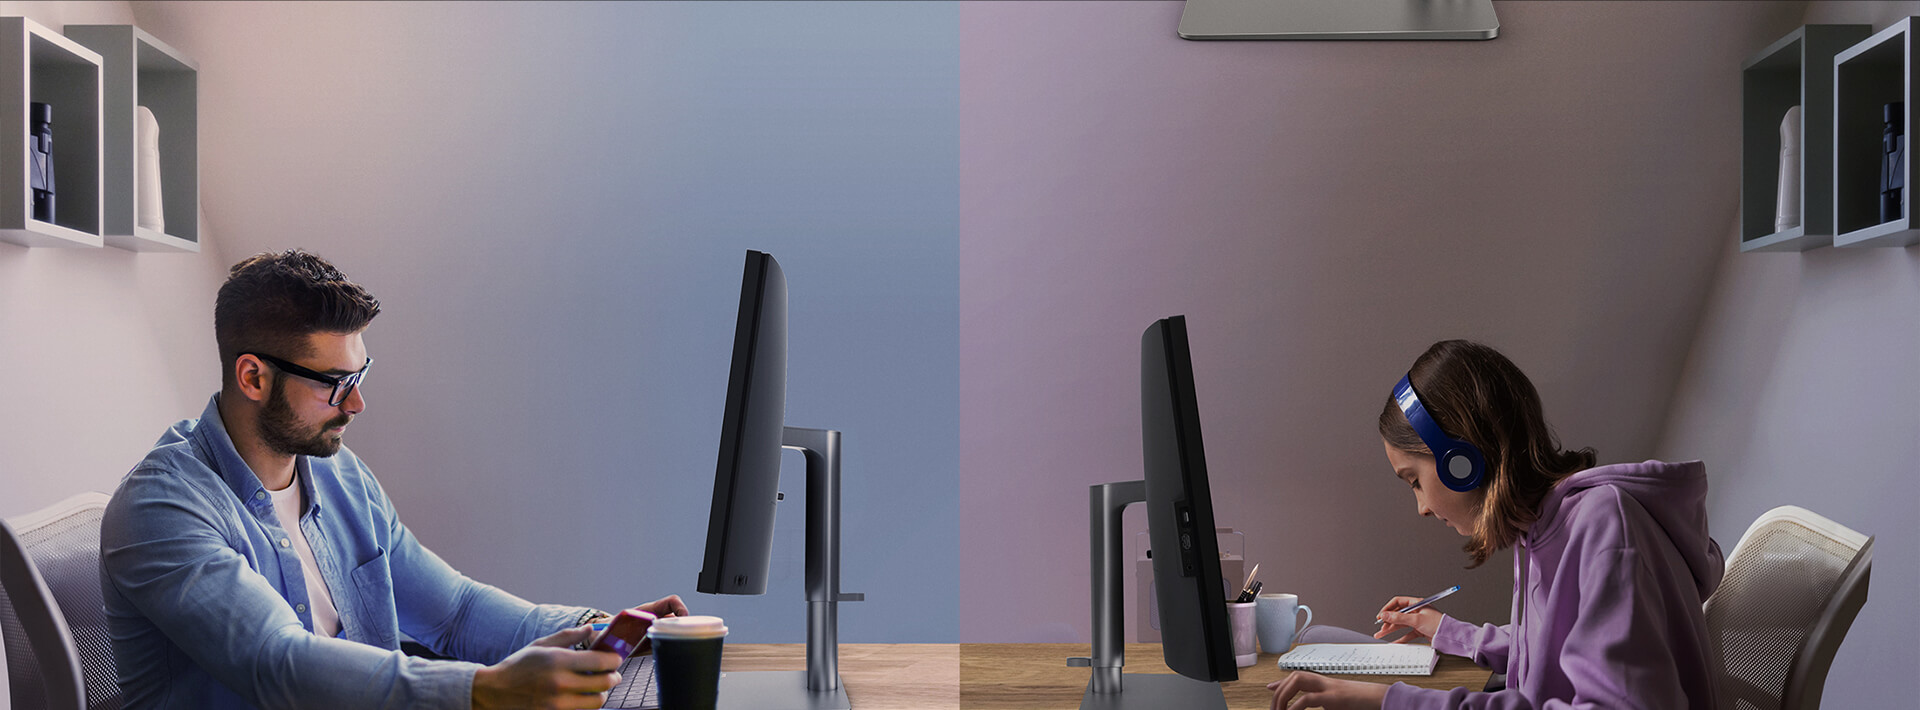 BenQ height adjustable monitors offer flexible height adjustment to bring wider swivel to the right eye level for better ergonomics